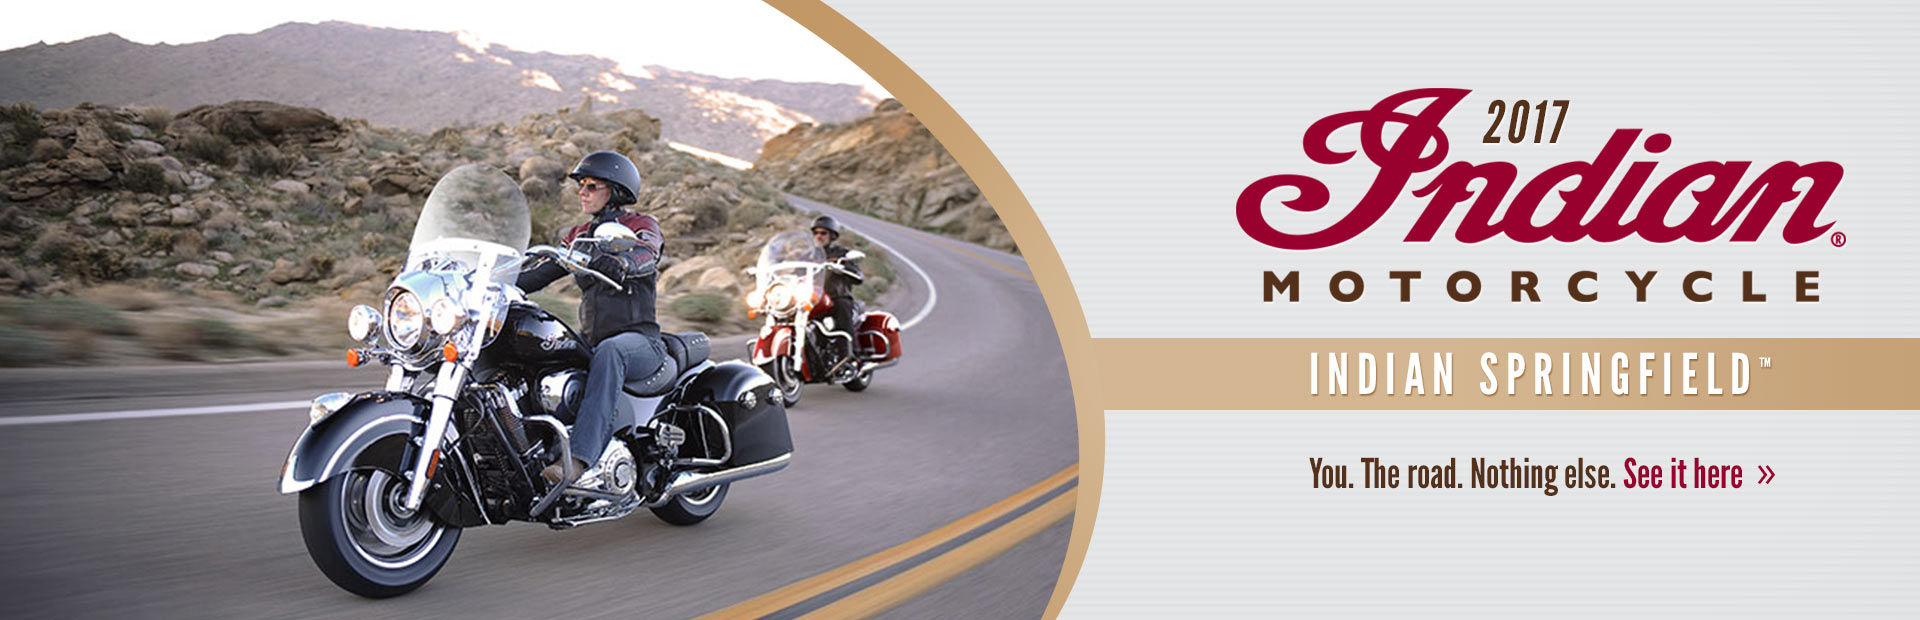 2017 Indian Motorcycle Indian Springfield™: Click here to view the model.